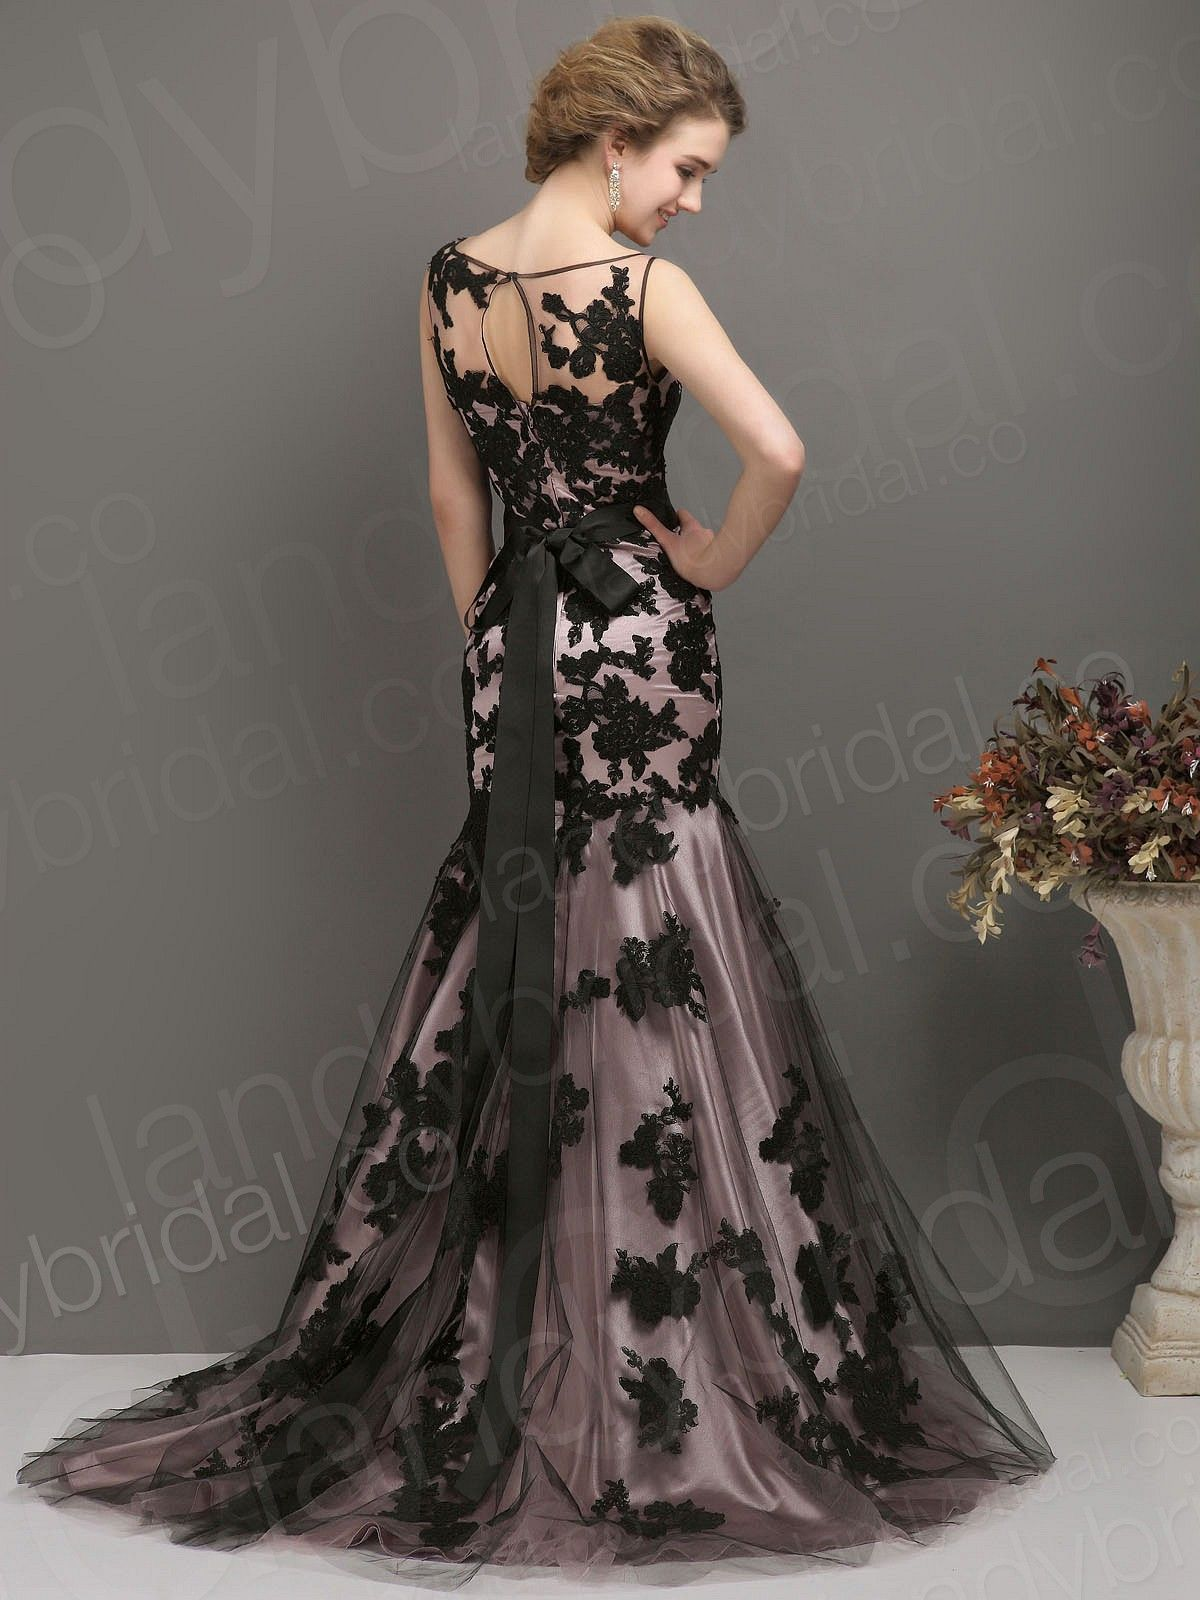 wedding dresses black Wedding Dress Trends Black Trumpet Mermaid Jewel Brush Train Pink Lace Zipper